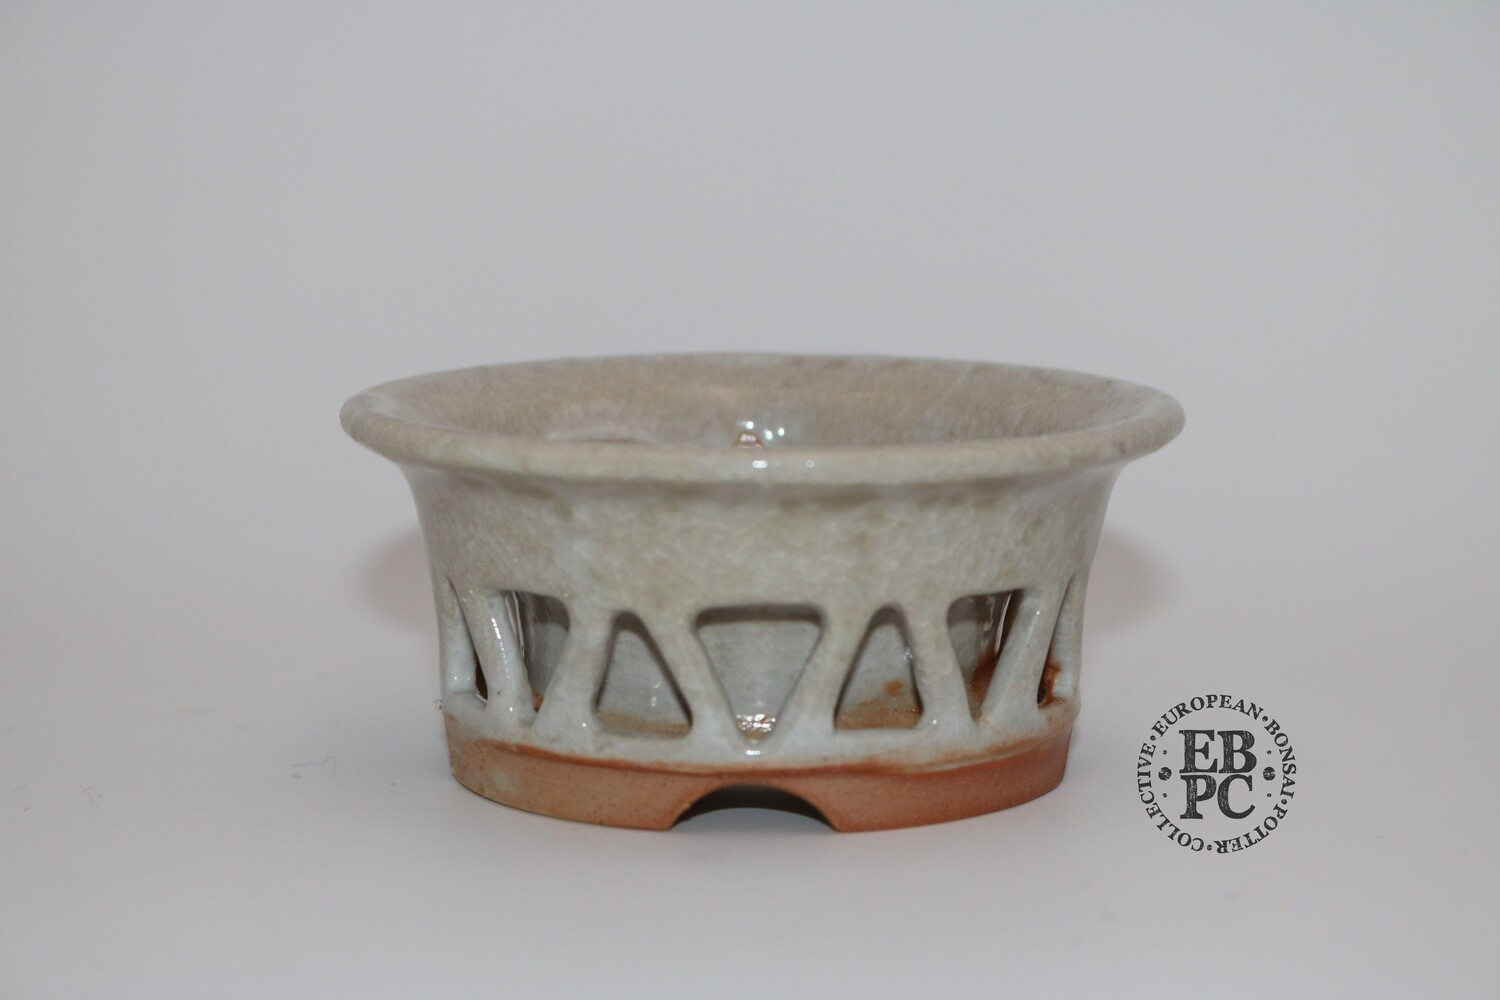 SOLD - Gramming Pots - 9.5cm; Double Skin' Design; Glazed; Stunning crackle glaze; Wood-fired; Tomas Gramming